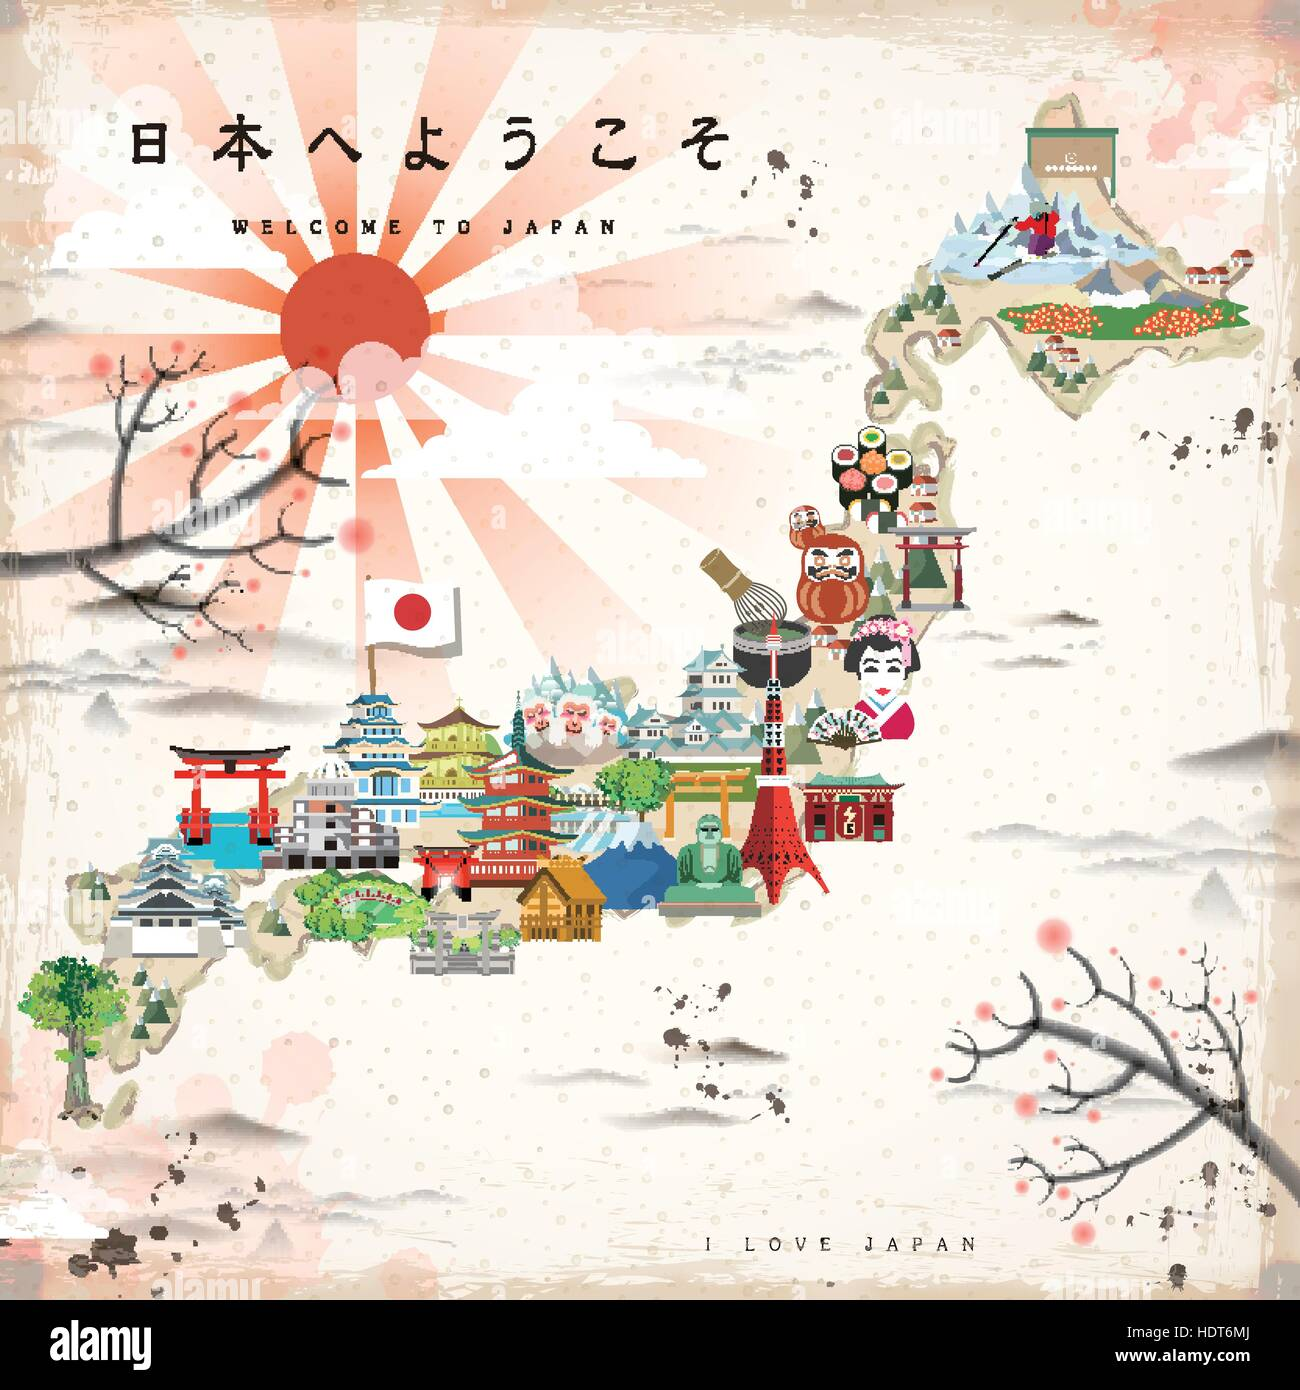 Beautiful Japan Travel Map Welcome To Japan In Japanese On Upper - Japan map hd